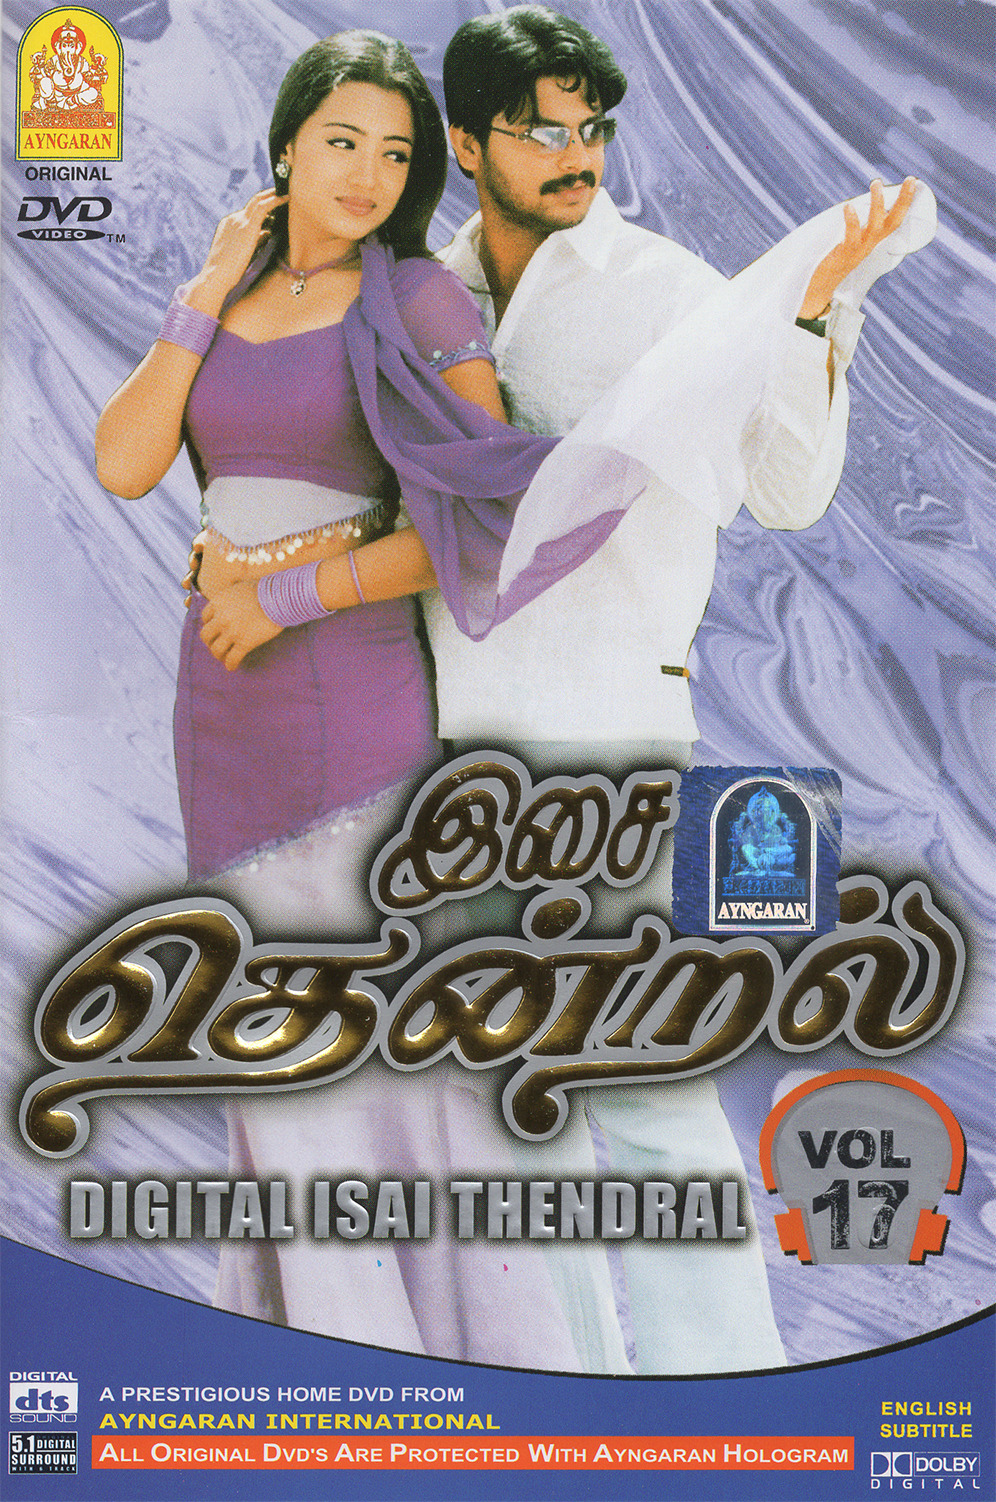 Digital Isai Thendral Vol 17